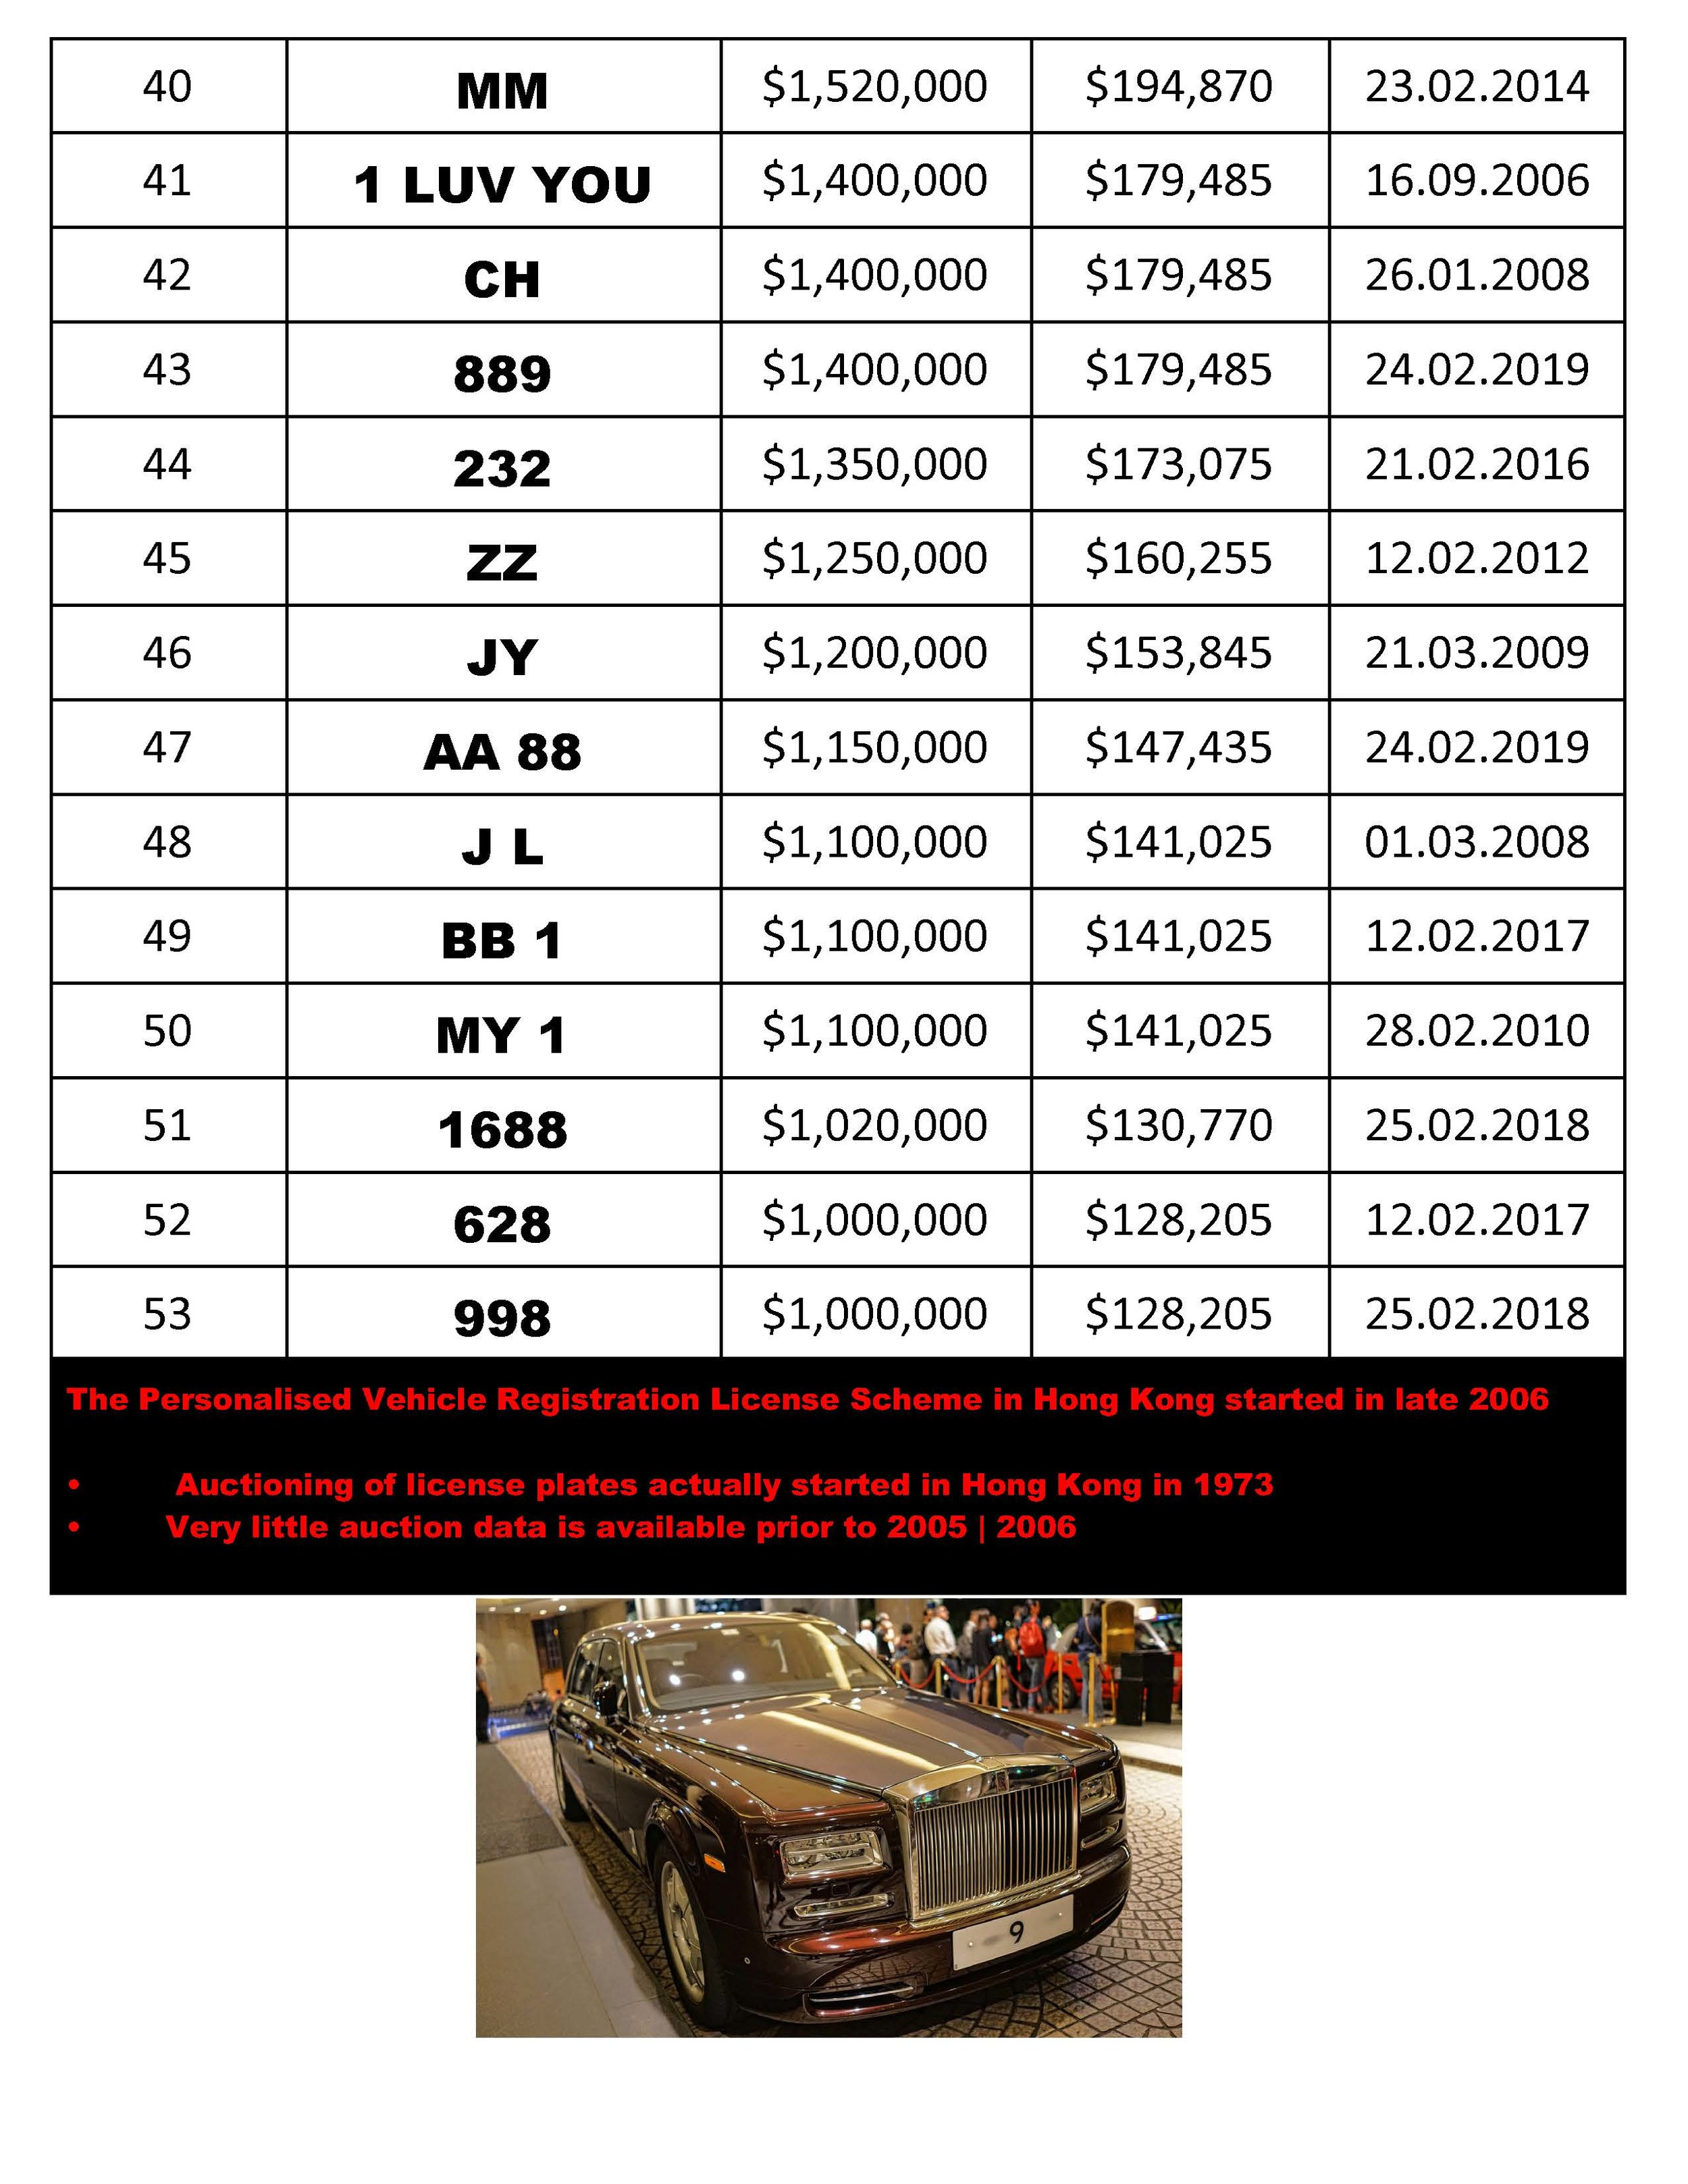 Hong Kong Car Number Plates that cost more than HK$1,000,000  US$128,205 Page 3.jpg